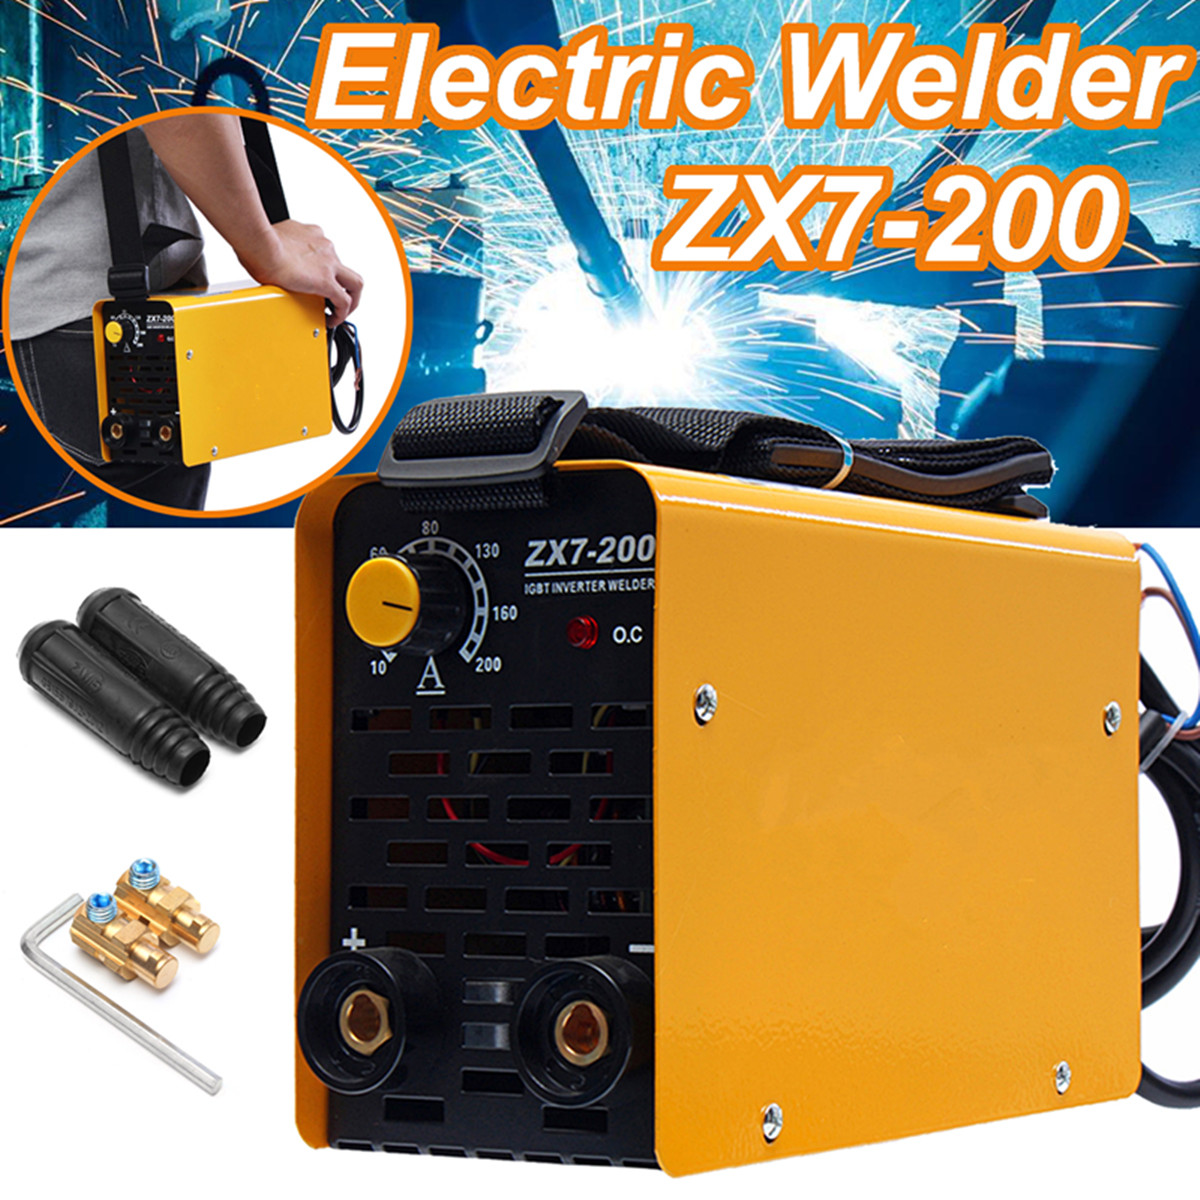 ZX7-200 220V Mini Electric Welding Machine Portable Solder 40W 10-200A IGBT Inverter Air Cooling Soldering Tool Welding Working igbt inverter welding machine co2 gas shielded welding machine n 200 220v 200a